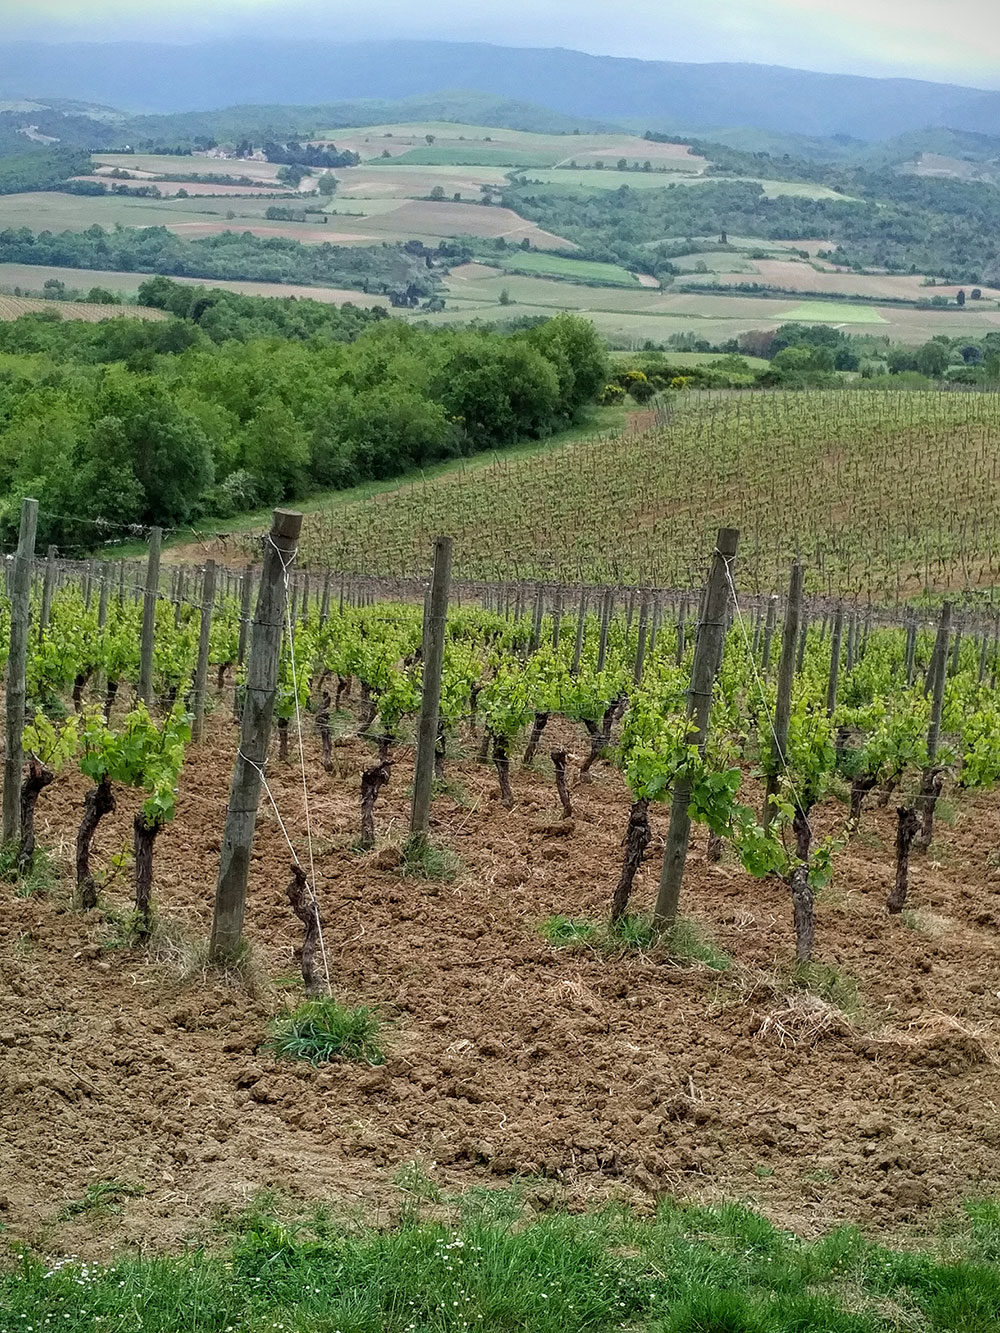 Even on a rather bleak afternoon, the views over the vineyards at this organic domaine are stunning, France